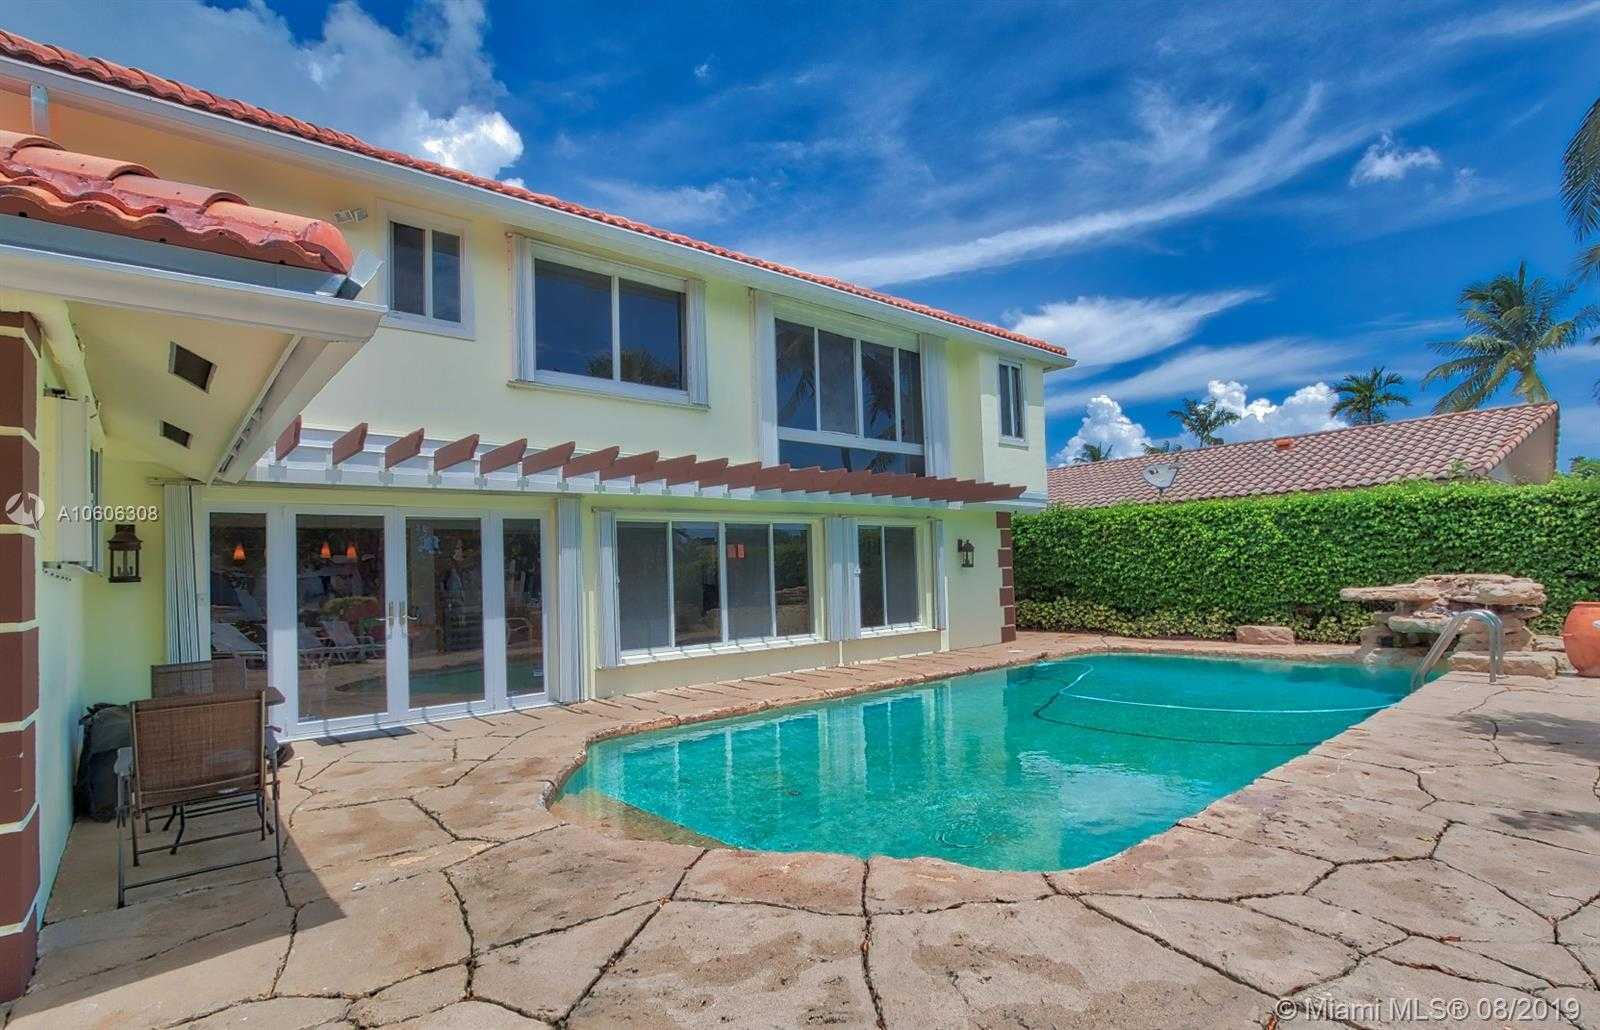 $1,495,000 - 5Br/4Ba -  for Sale in Coral Ridge Country Club, Fort Lauderdale